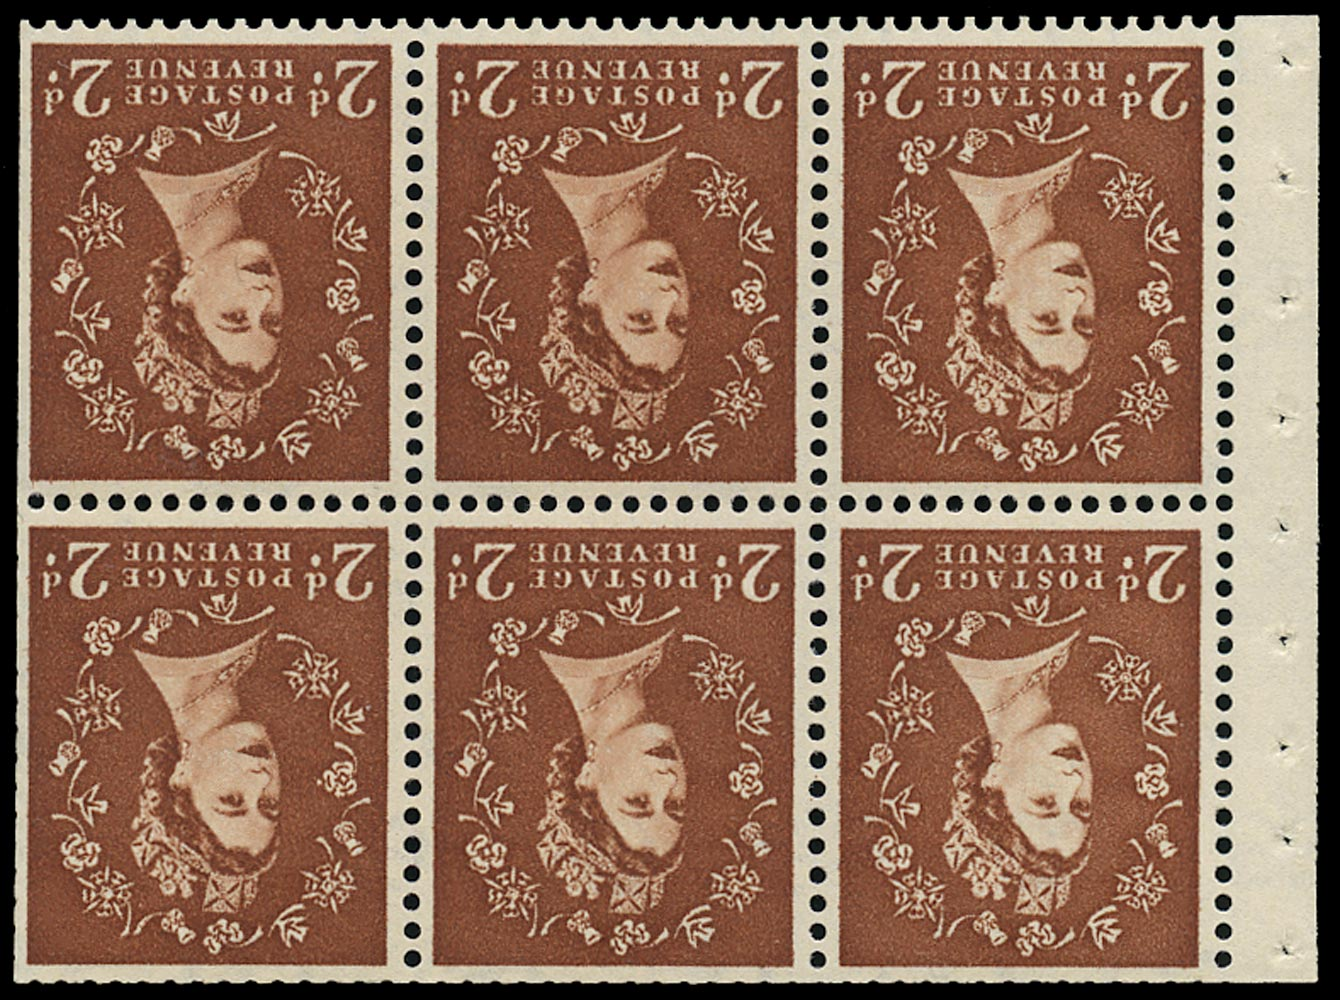 GB 1961  SG573lWi Booklet pane - Wmk. Crowns inverted with 'Spot on Shamrock' variety